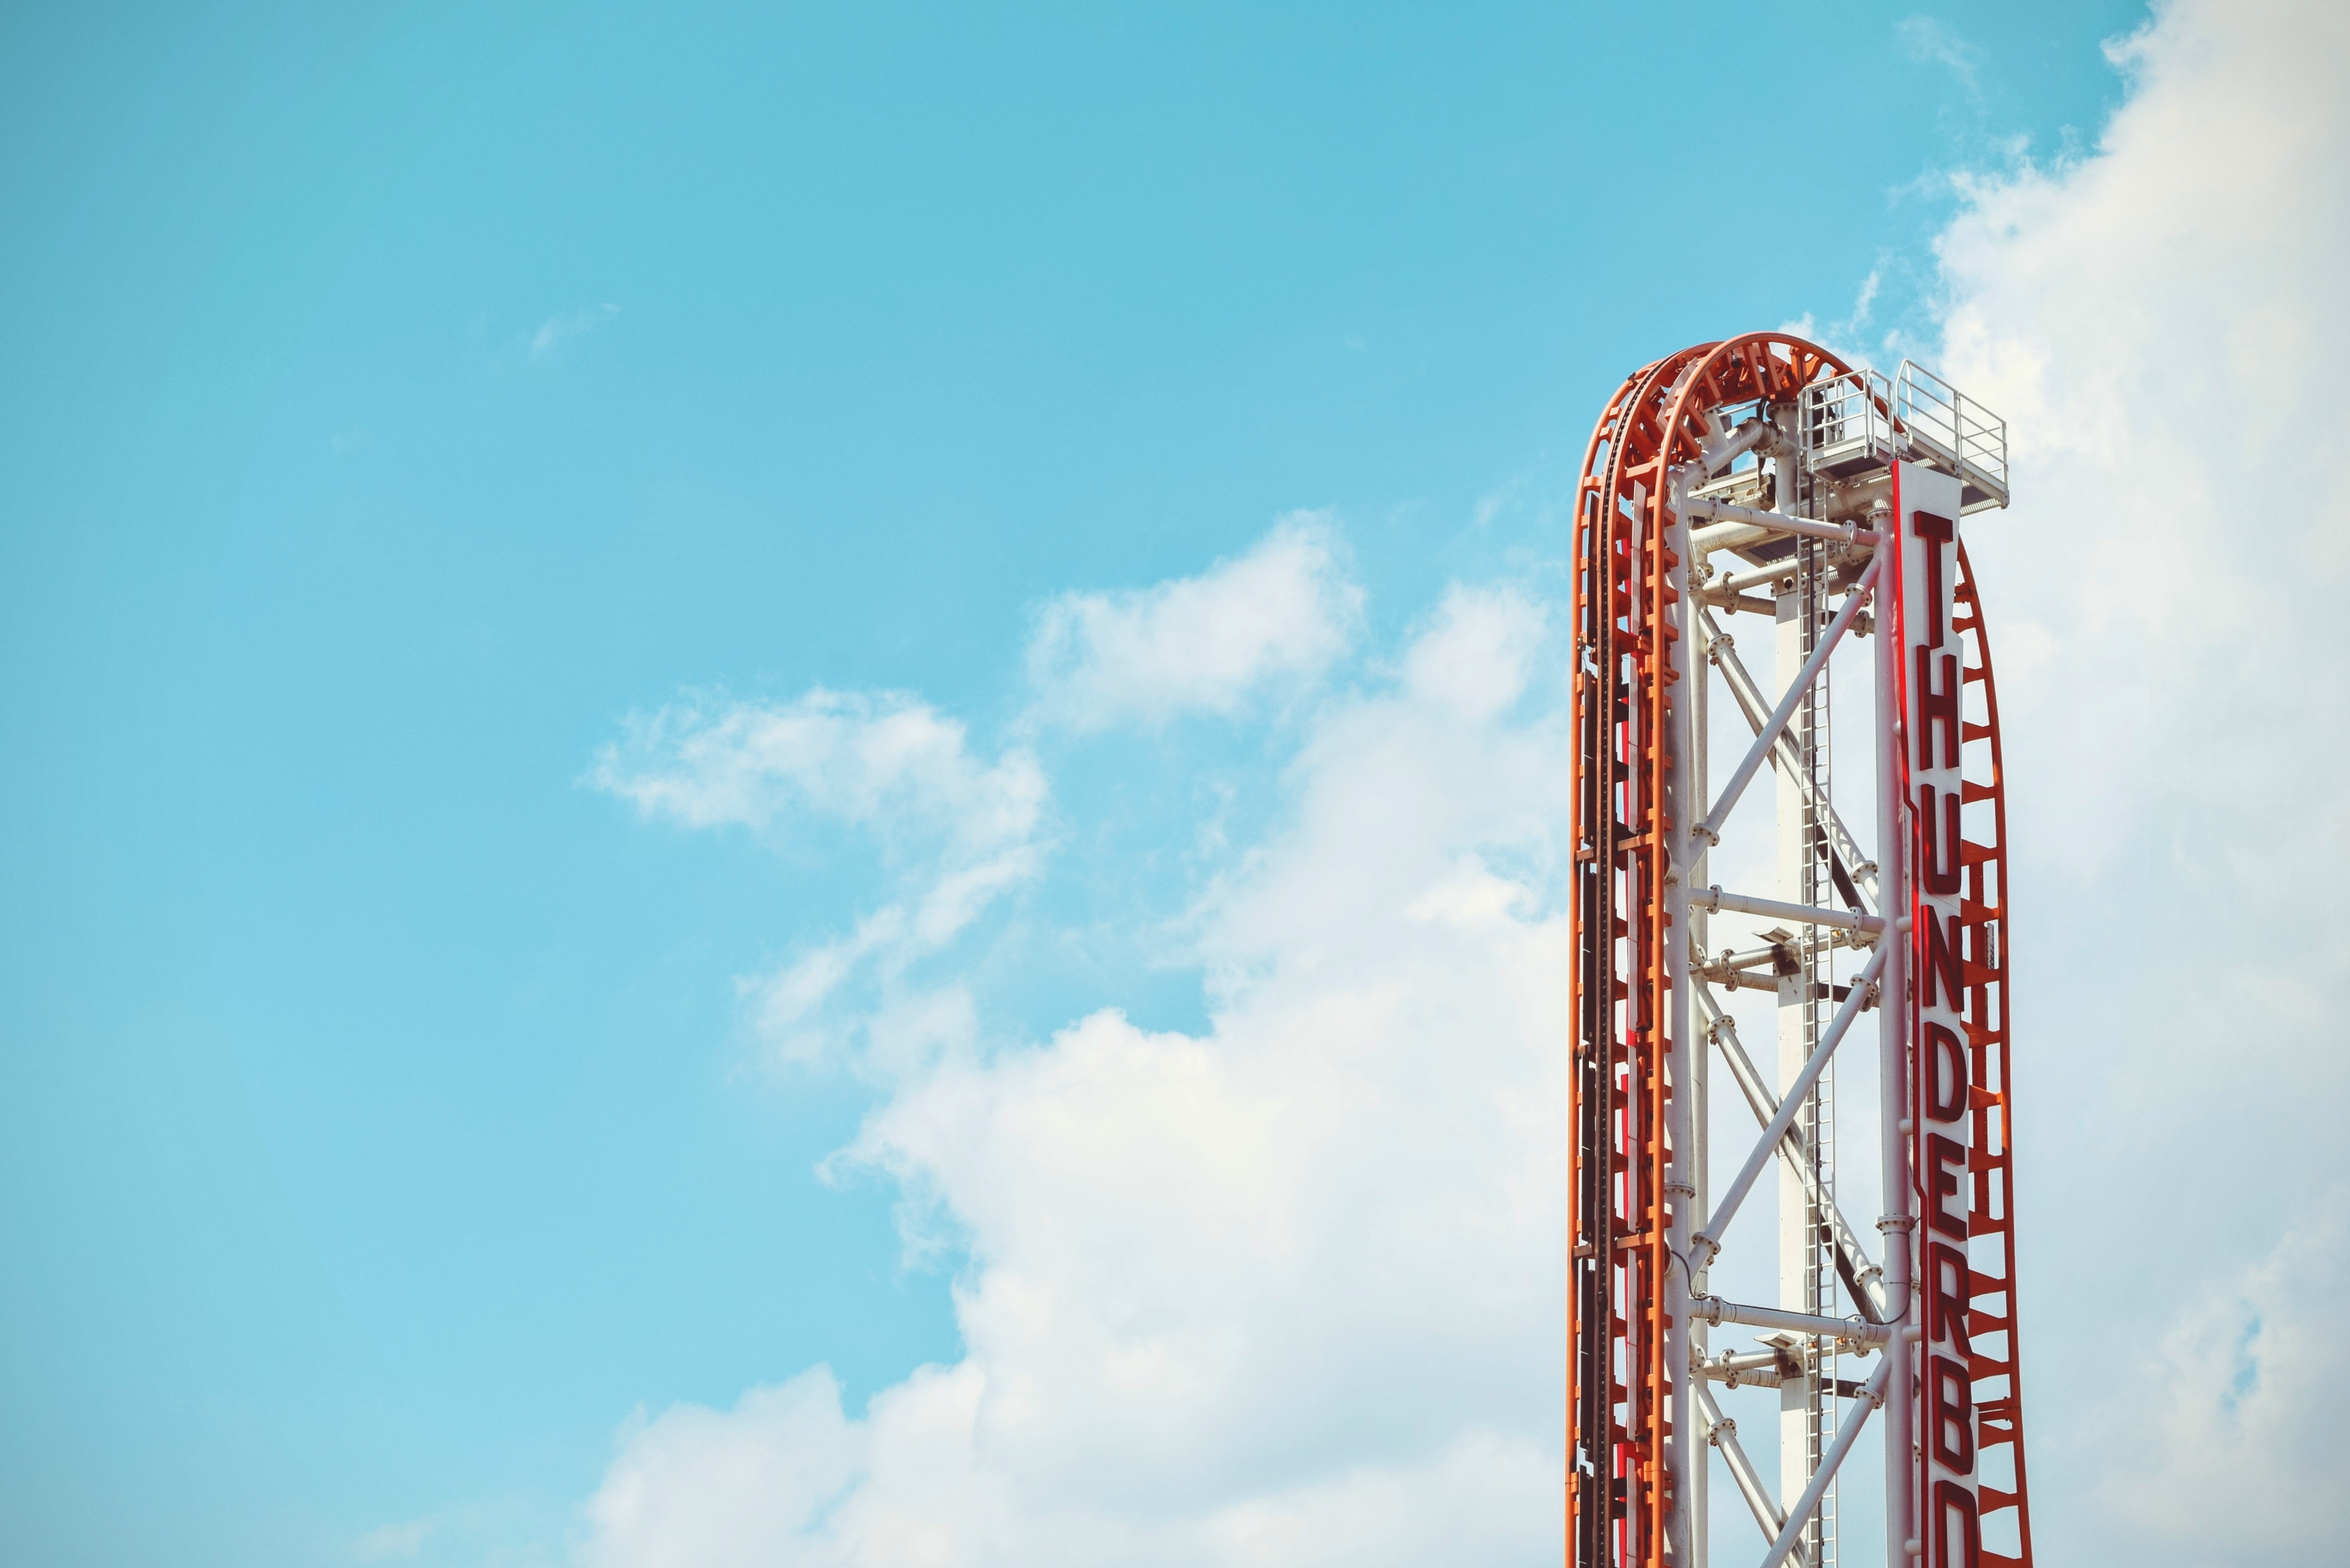 red and white Thunderbolt roller coaster ride